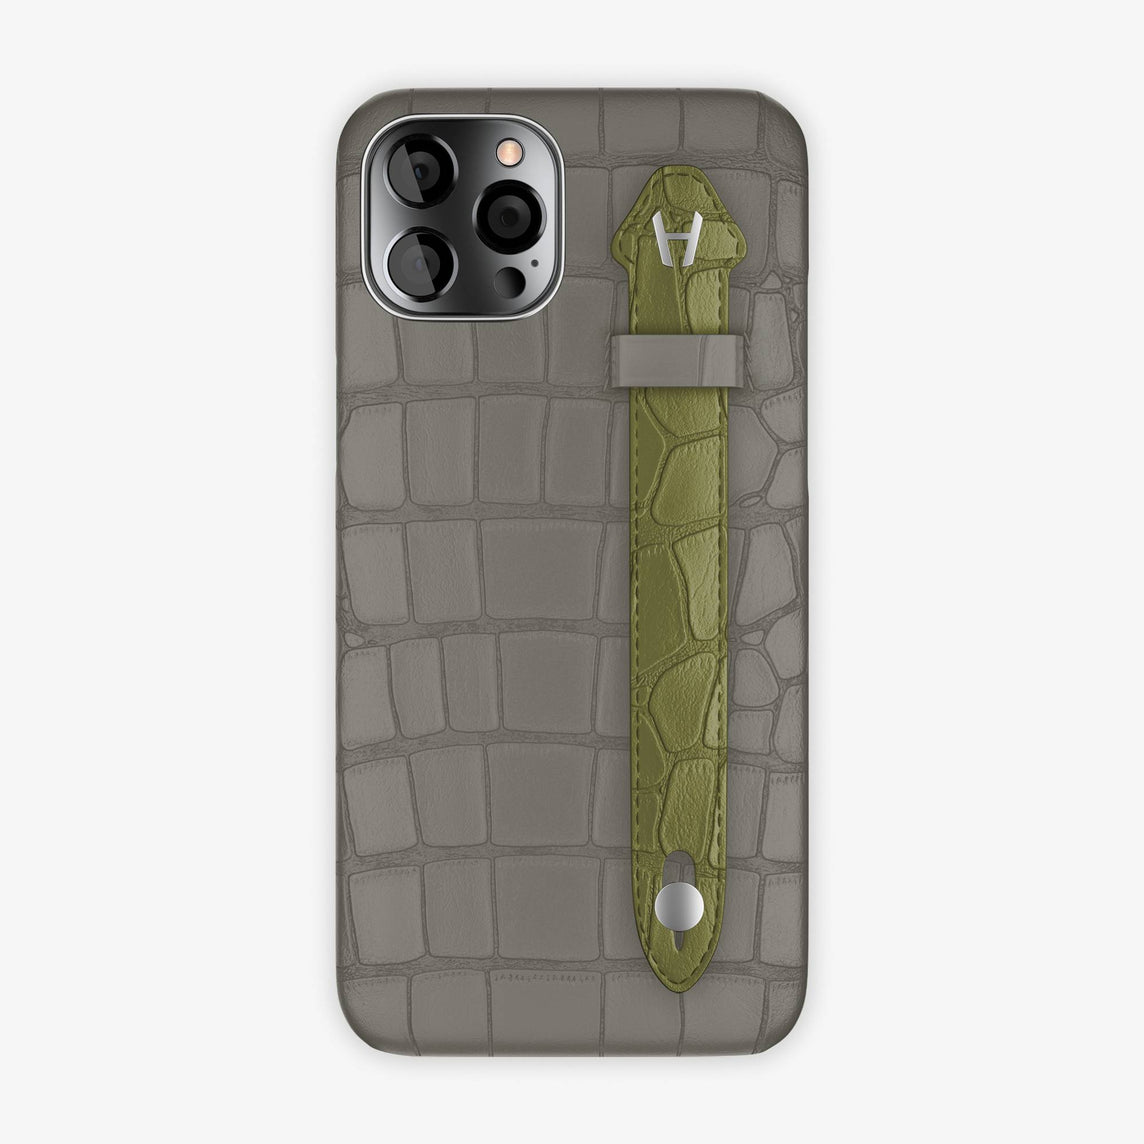 Alligator Side Finger Case iPhone 12 Pro Max | Pearl Grey/Khaki - Stainless Steel